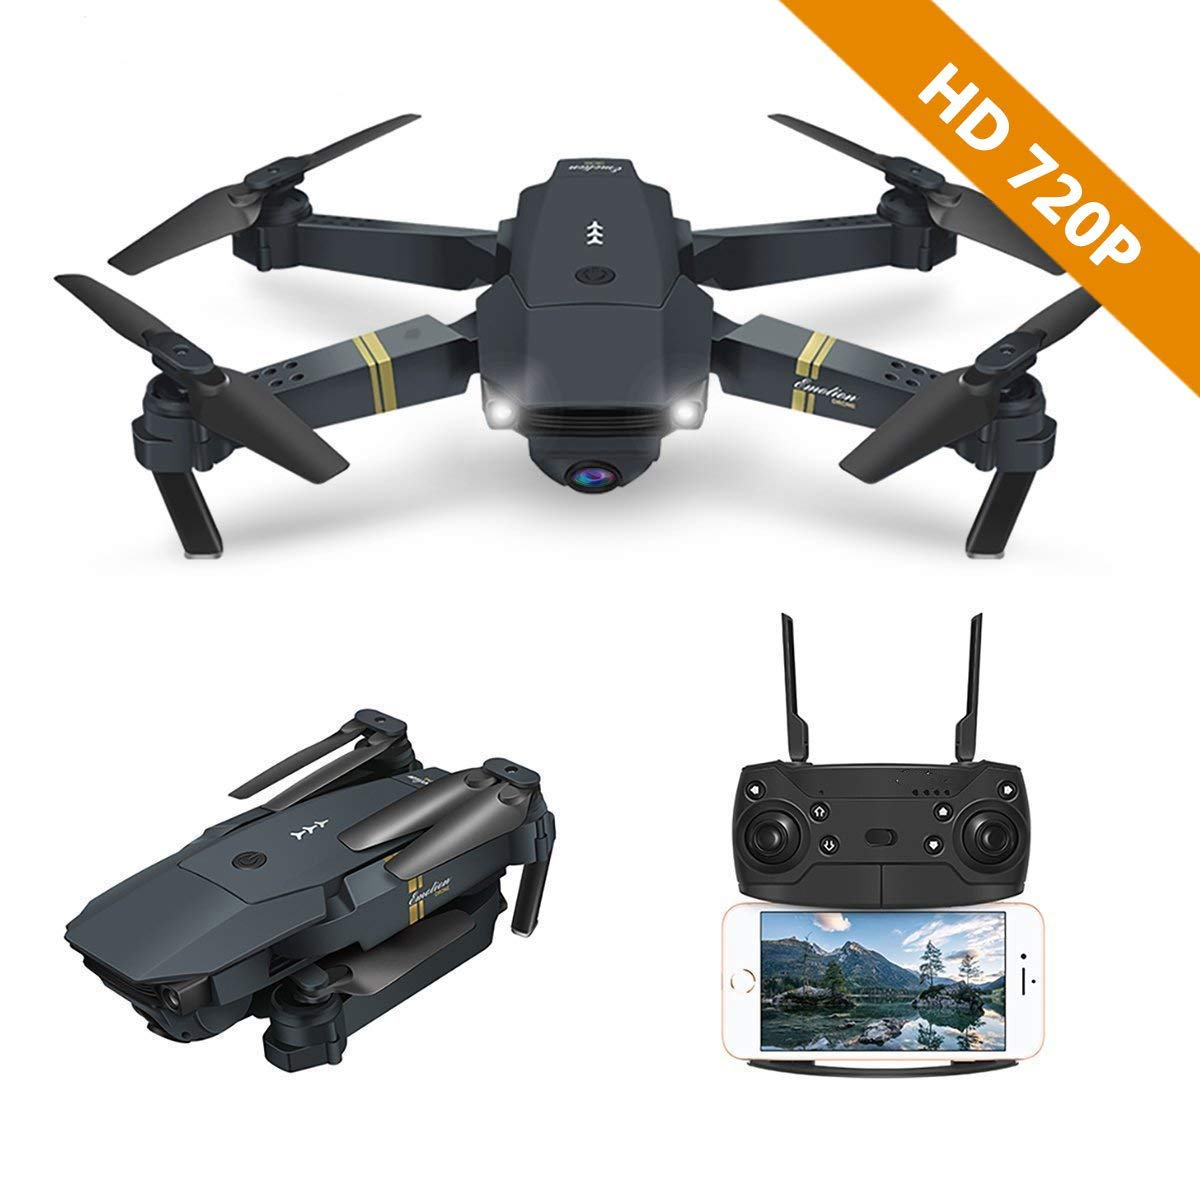 Unbekannt Drone with Camera, E58 WiFi FPV Quadcopter Mit 2MP 720P Wide Angle Camera Live Video Mobile APP Control Folable Altitude Hold Mode Selfie Pocket RC Helikopter RTF